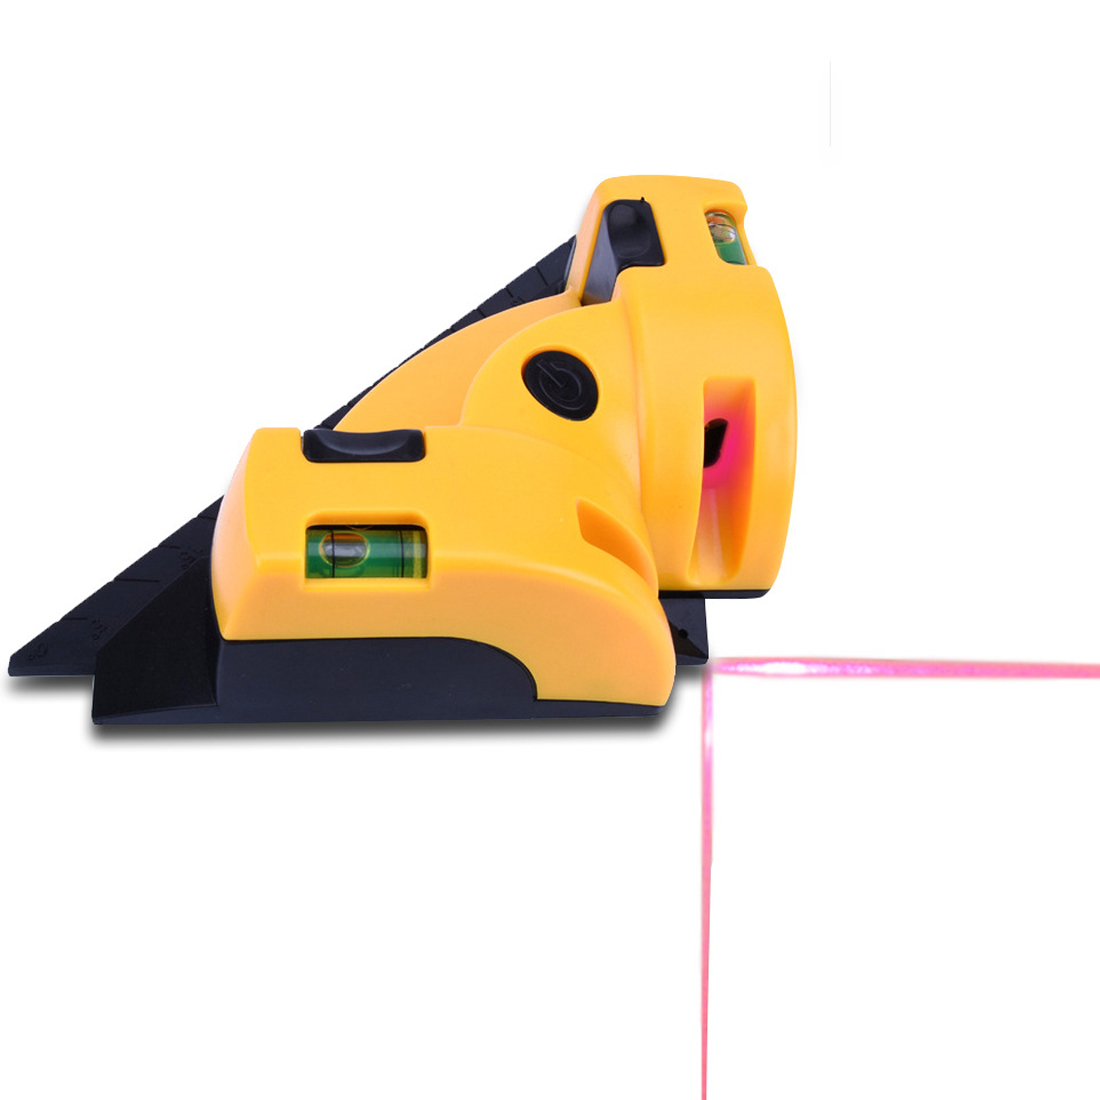 Right Angle 90 Degree Vertical Horizontal Laser Line Projection Square Level стоимость